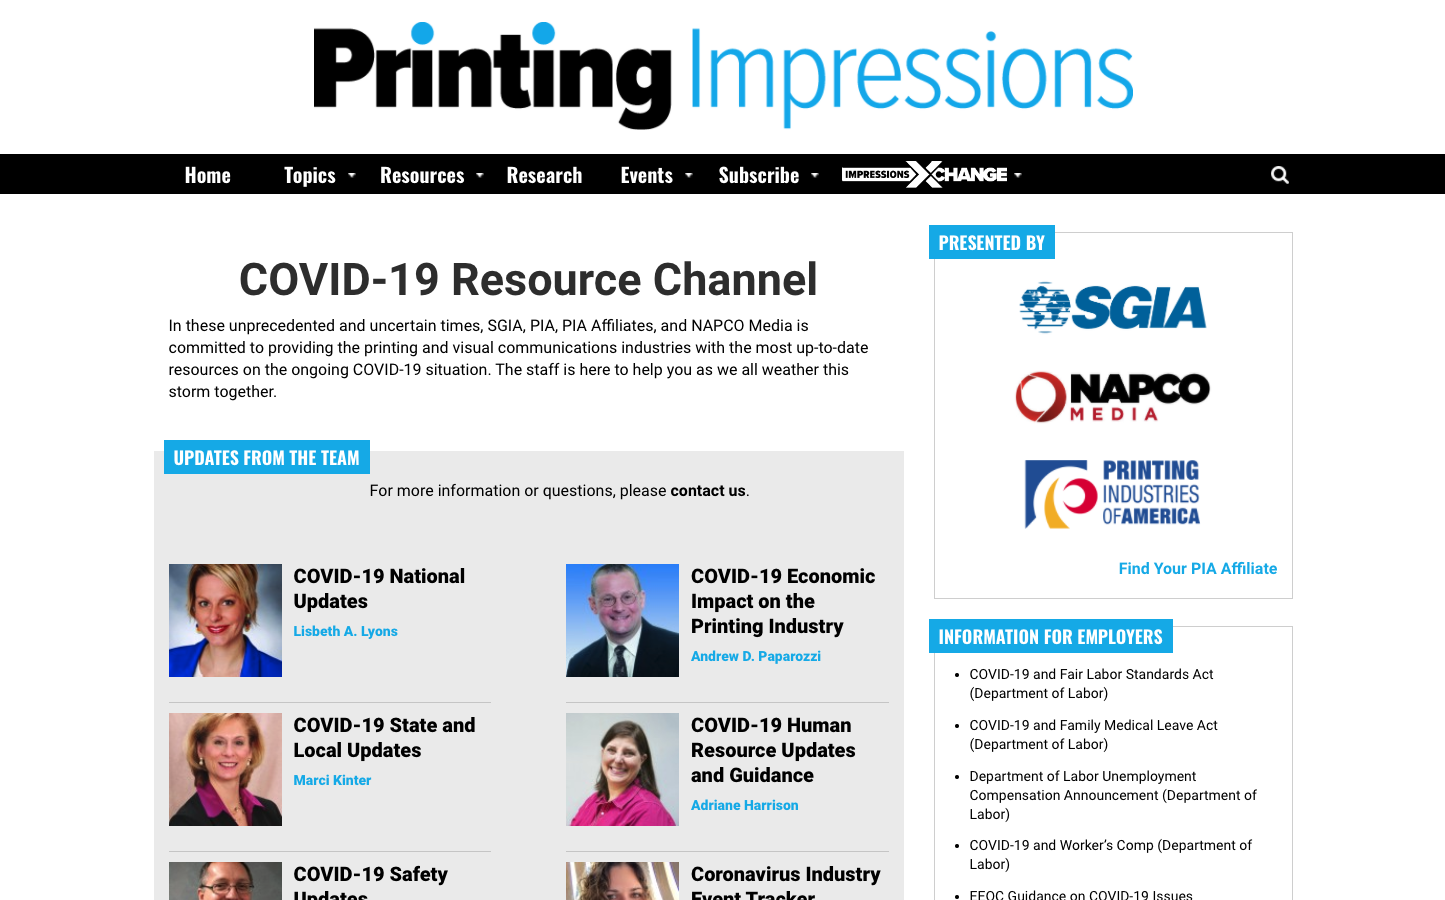 Thumbnail of COVID-19 resource page.